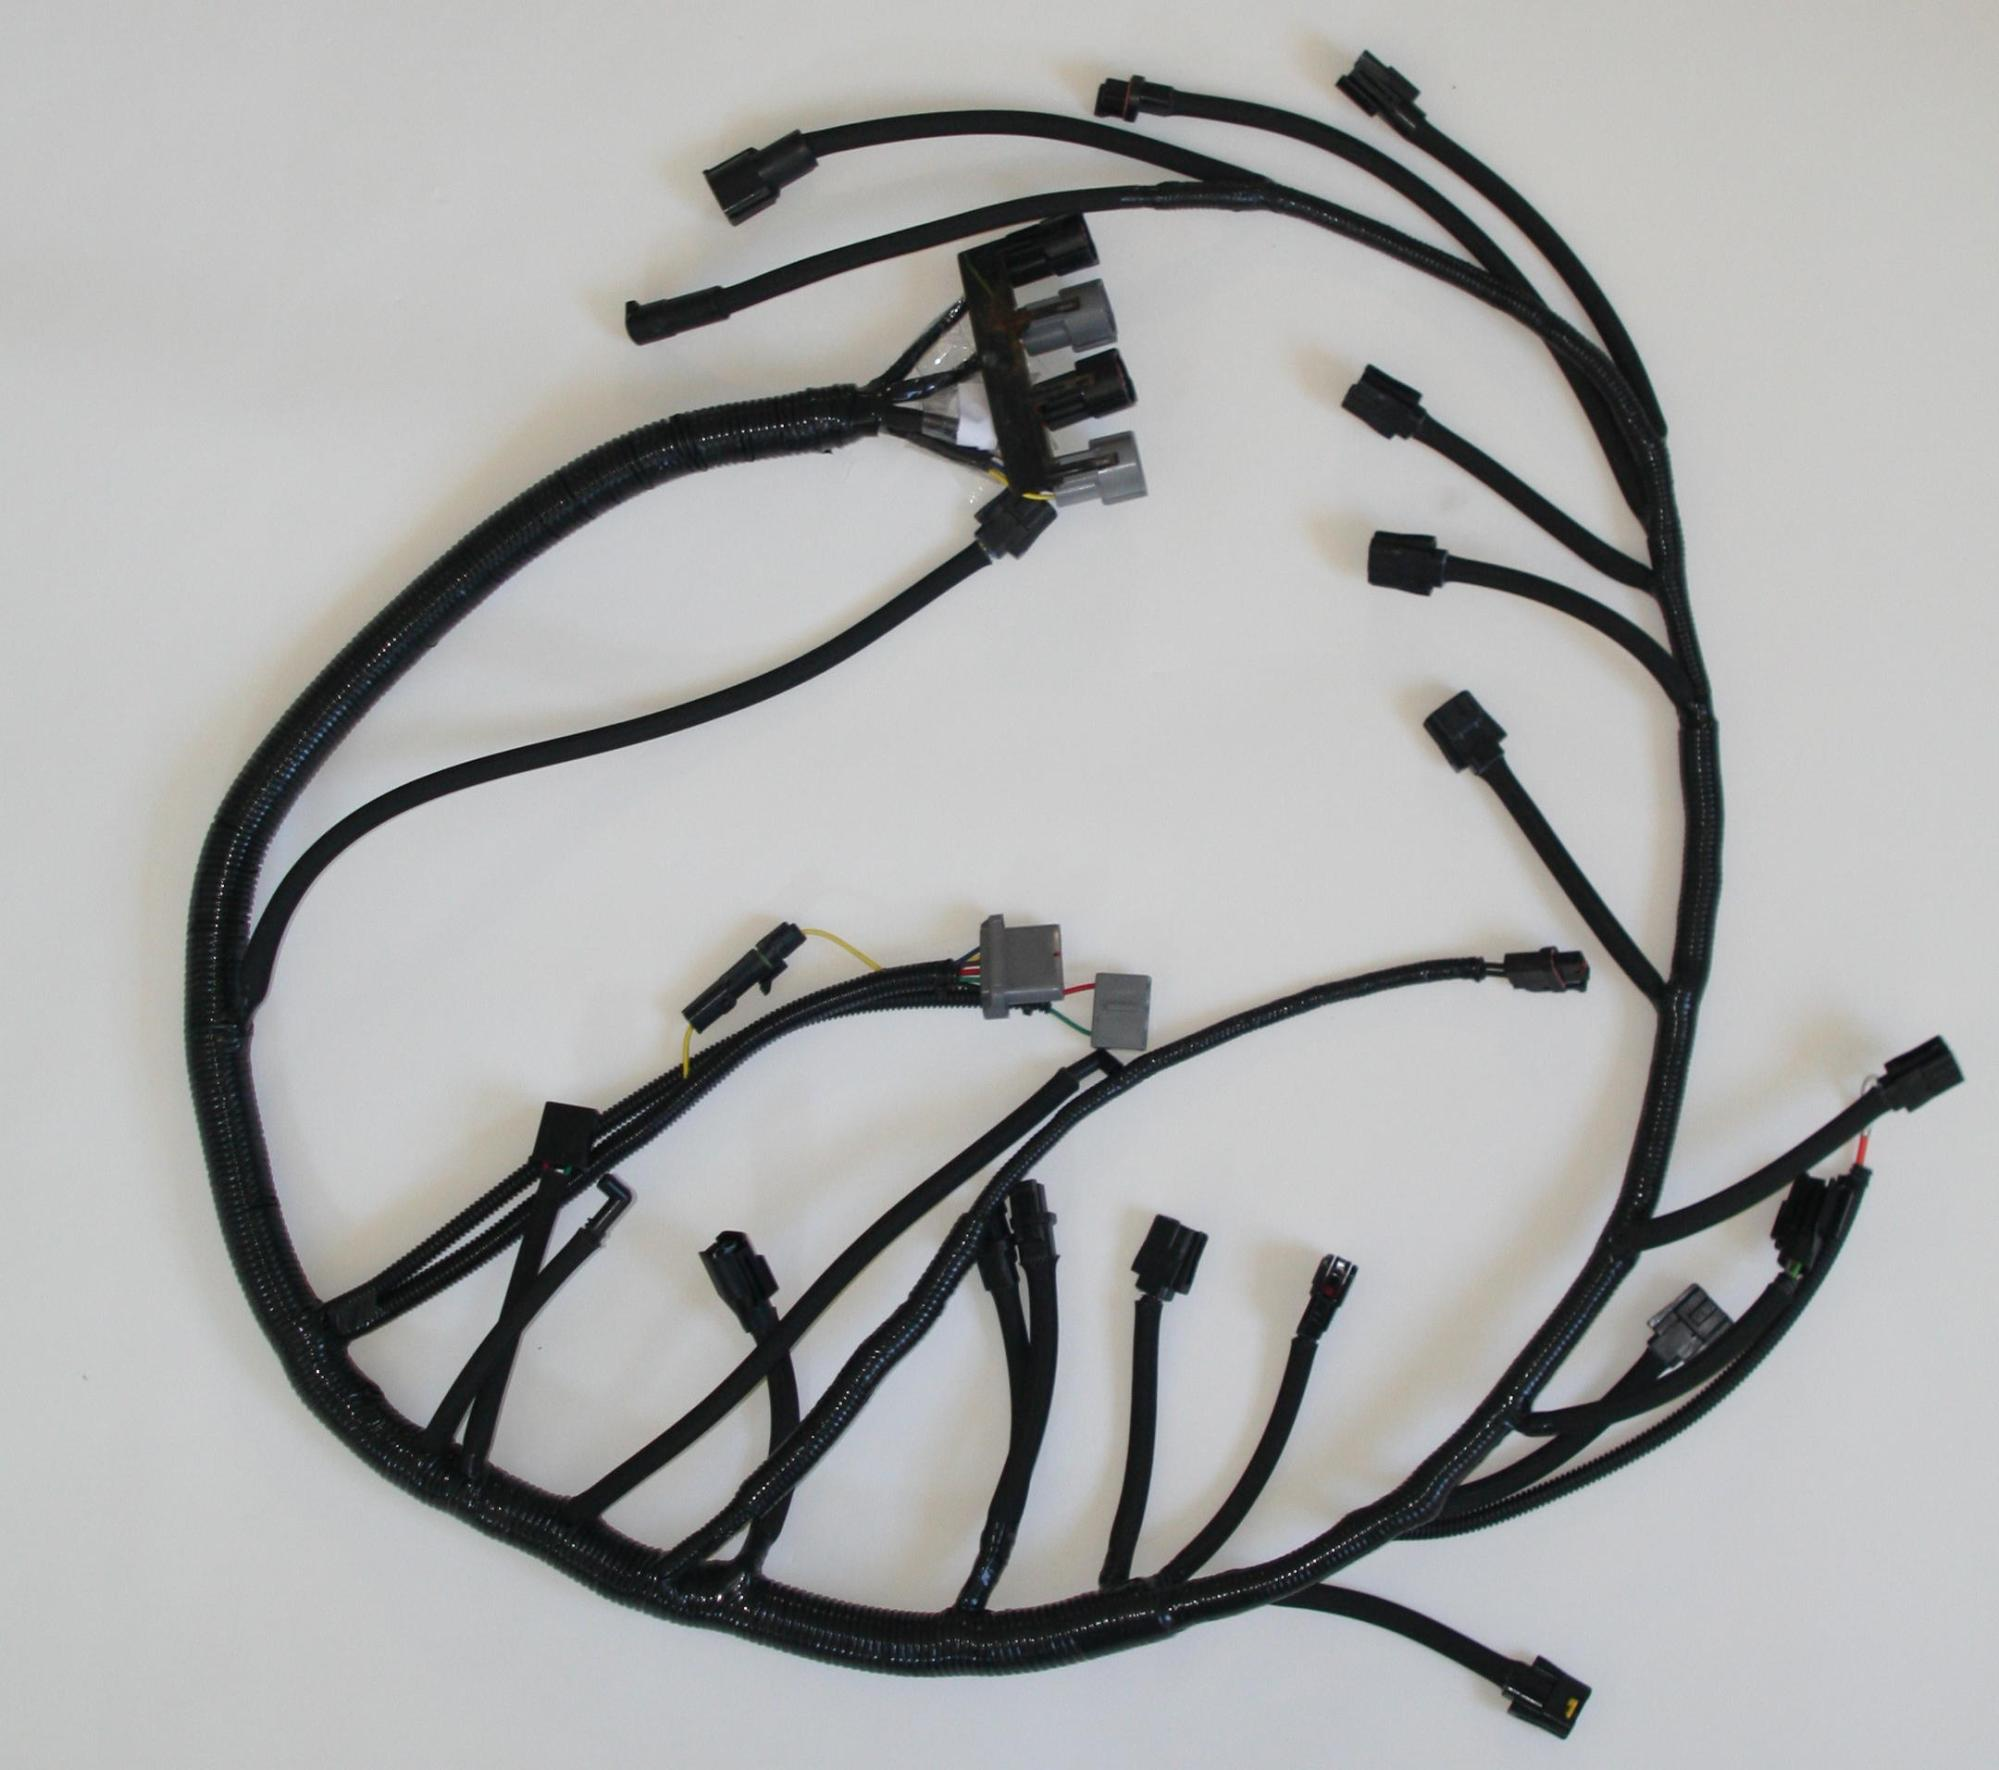 hight resolution of 1988 ford f 150 truck wiring harnes